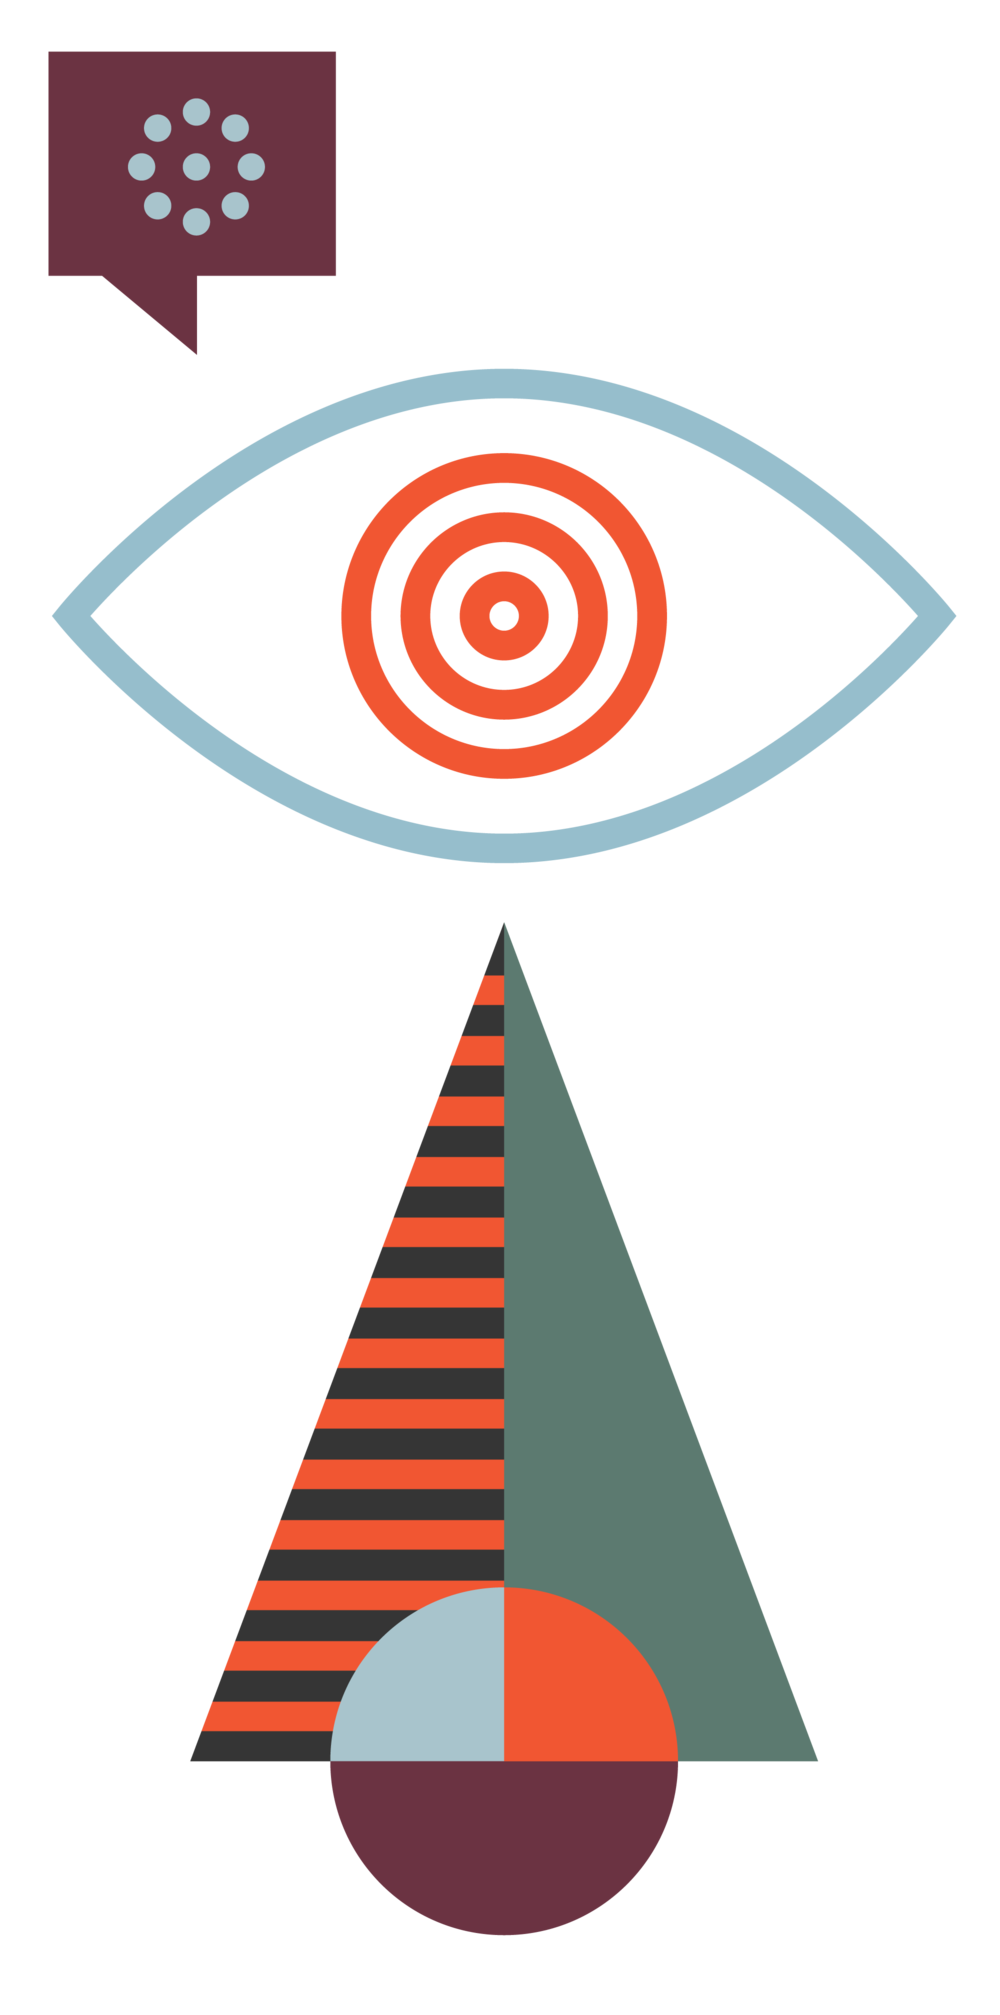 OT_Illustrations-eye.png